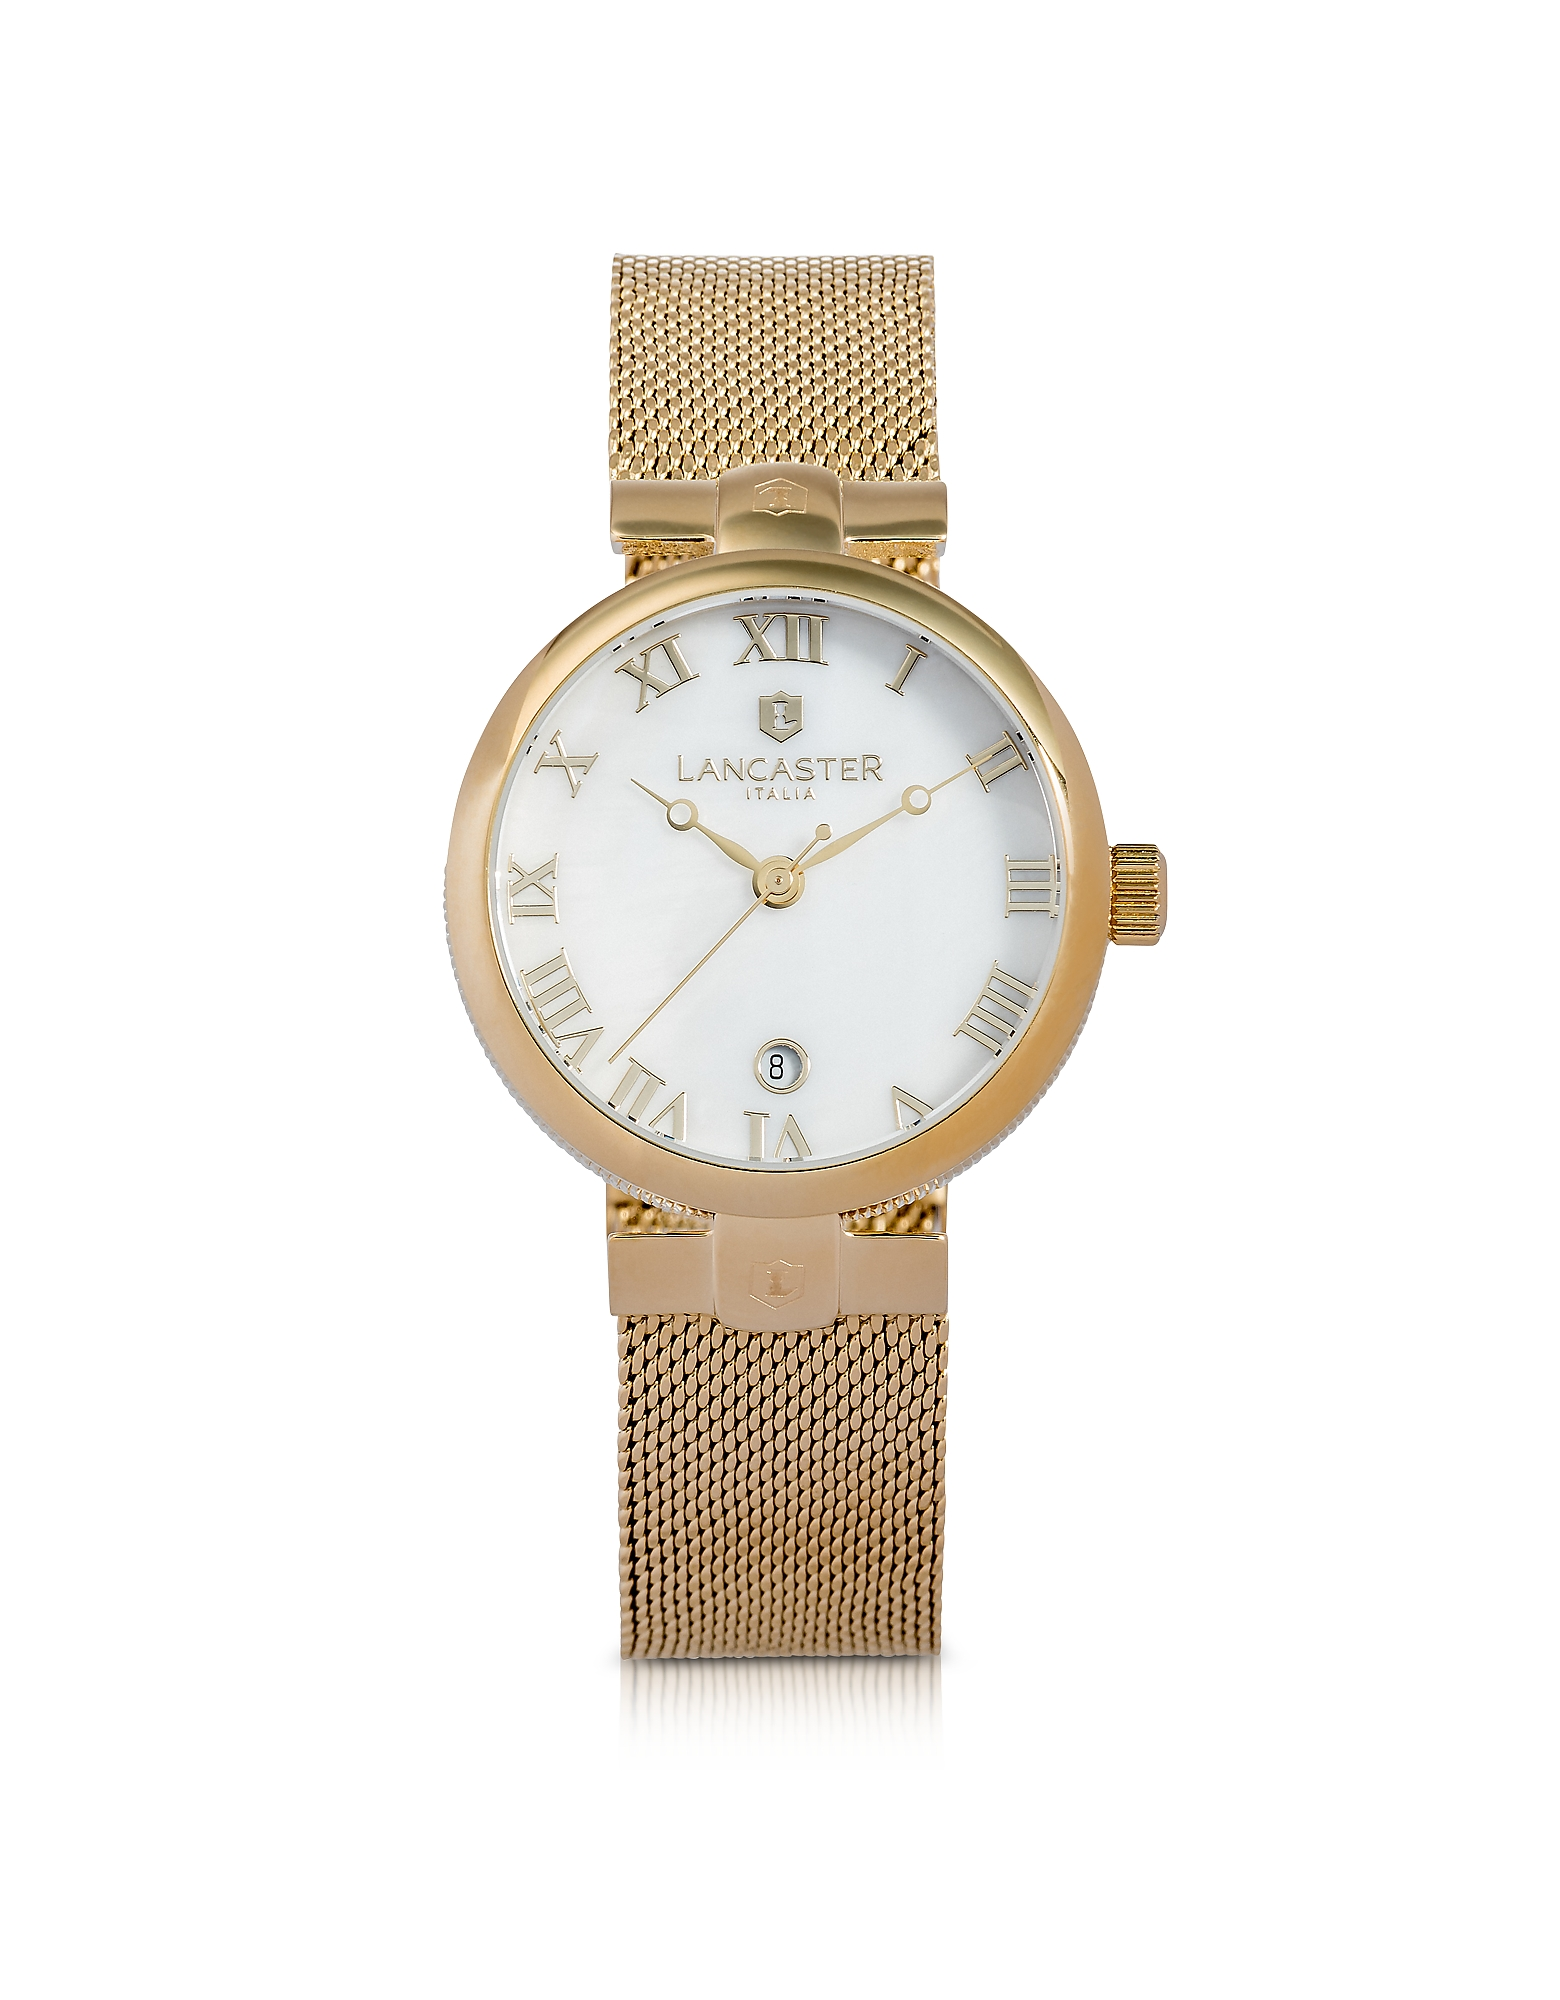 Lancaster Women's Watches, Chimaera Yellow Gold Stainless Steel Watch